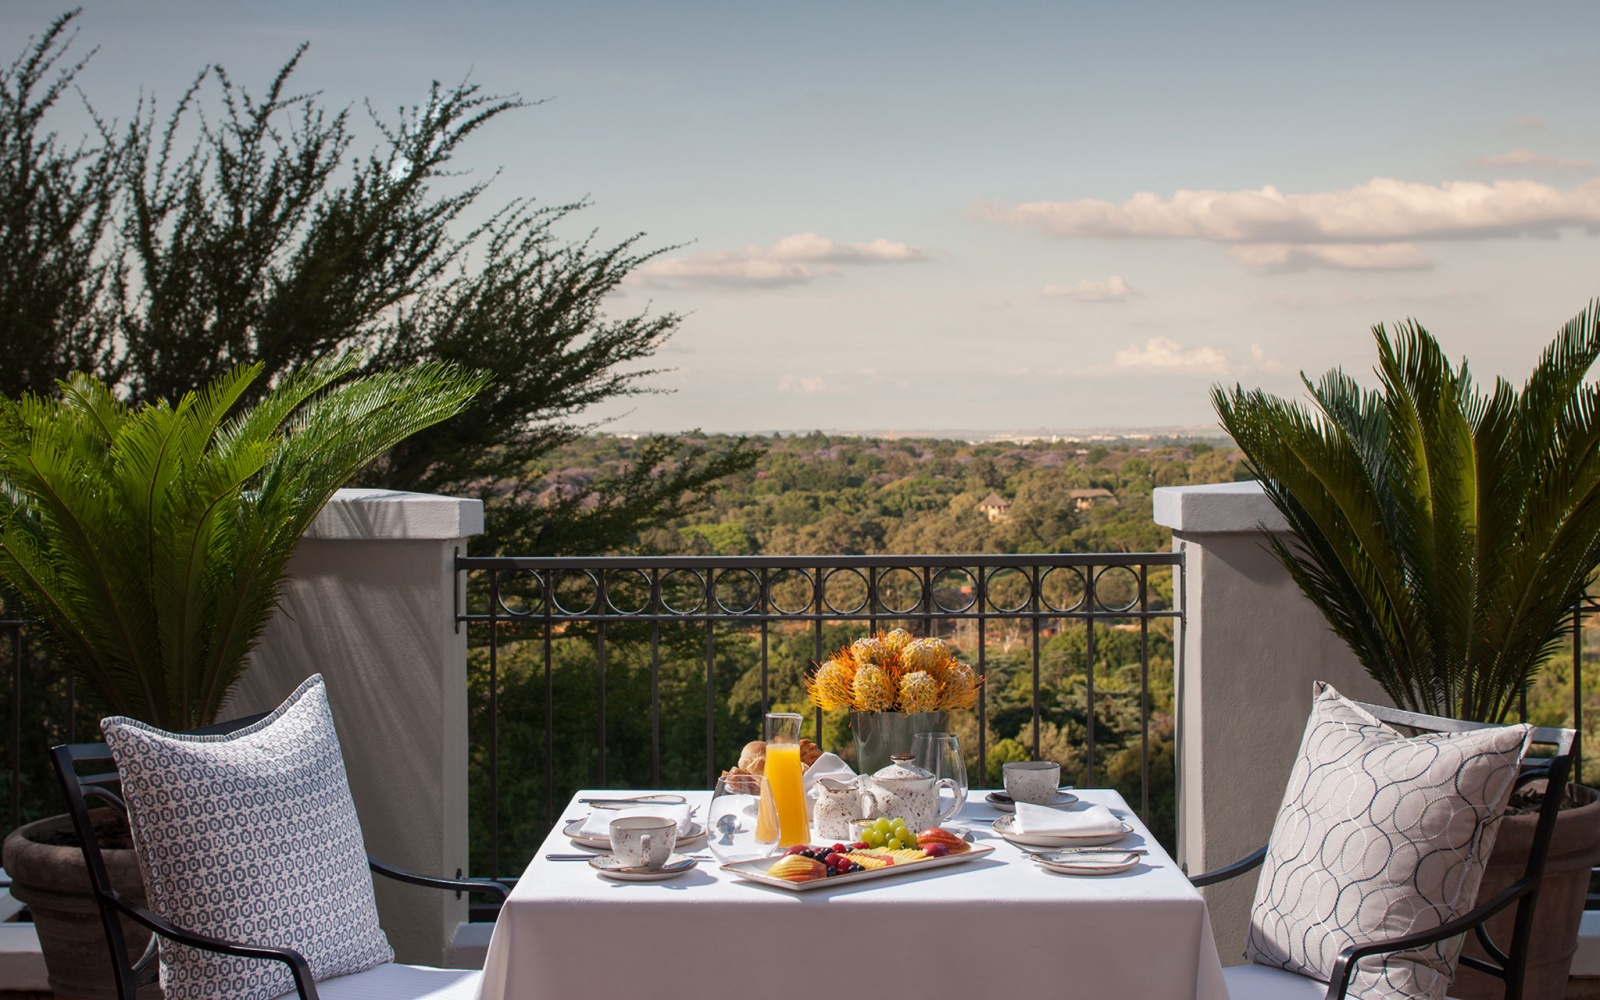 Four Seasons Hotels & Resorts in Johannesburg, SA